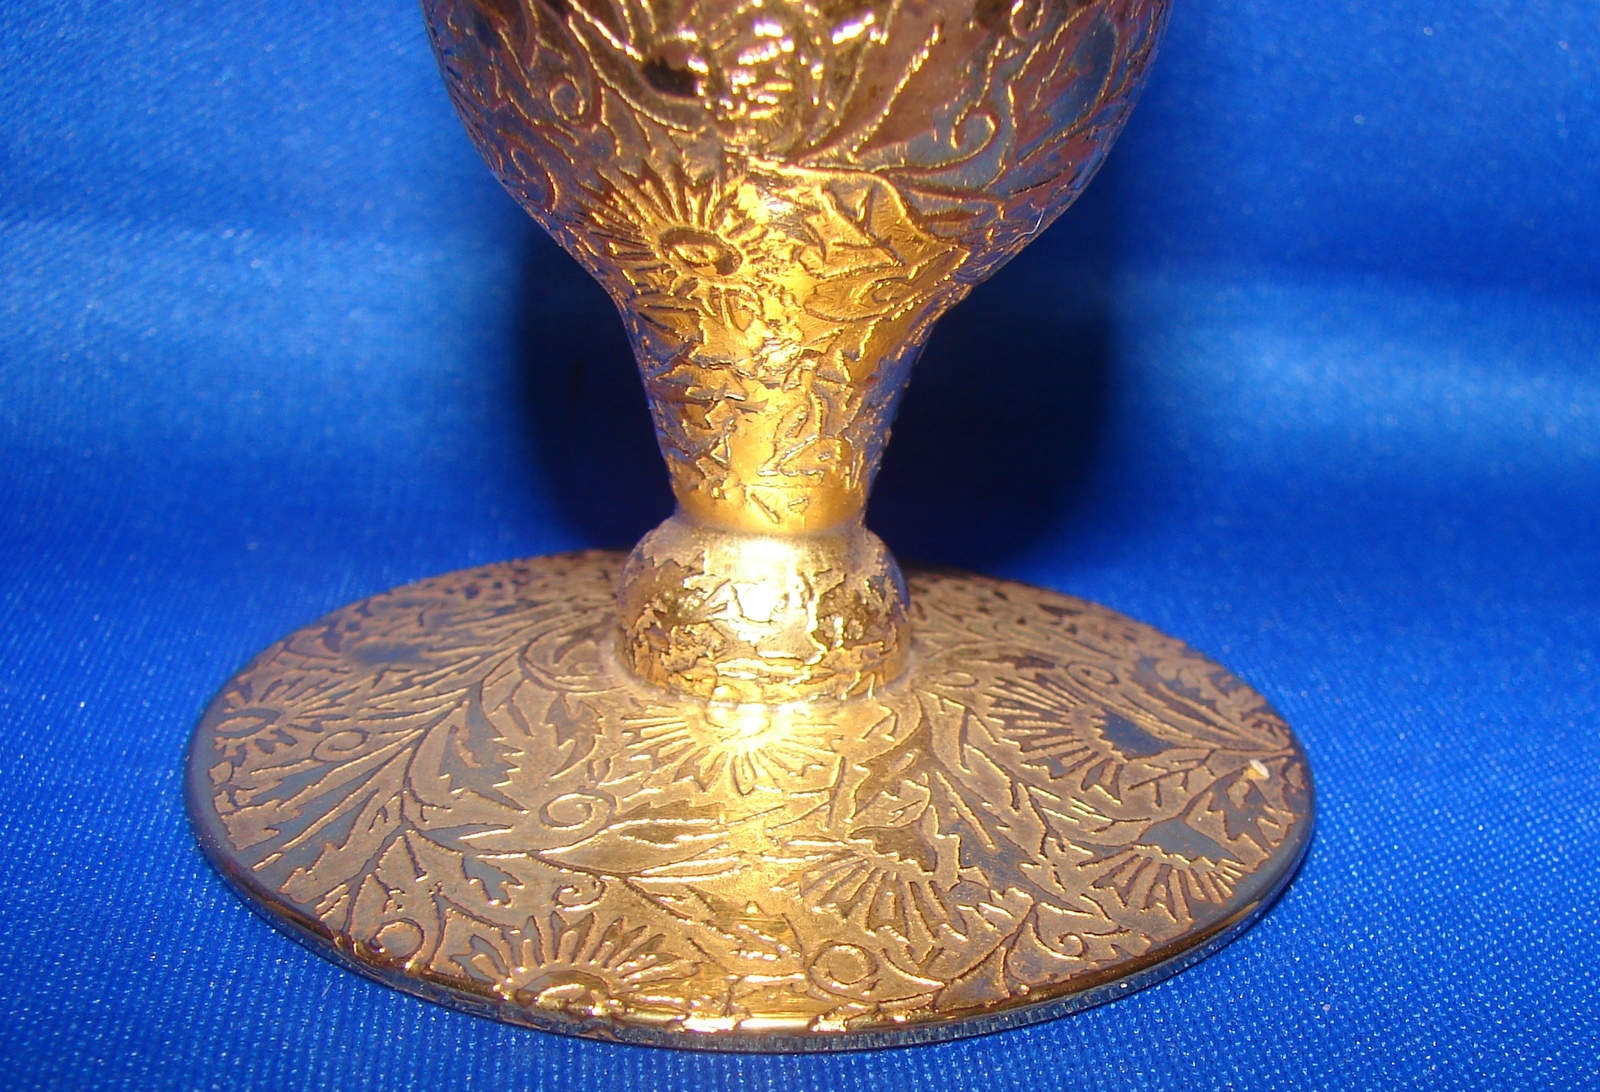 22k Gold Enameled Glass Bud Vase,